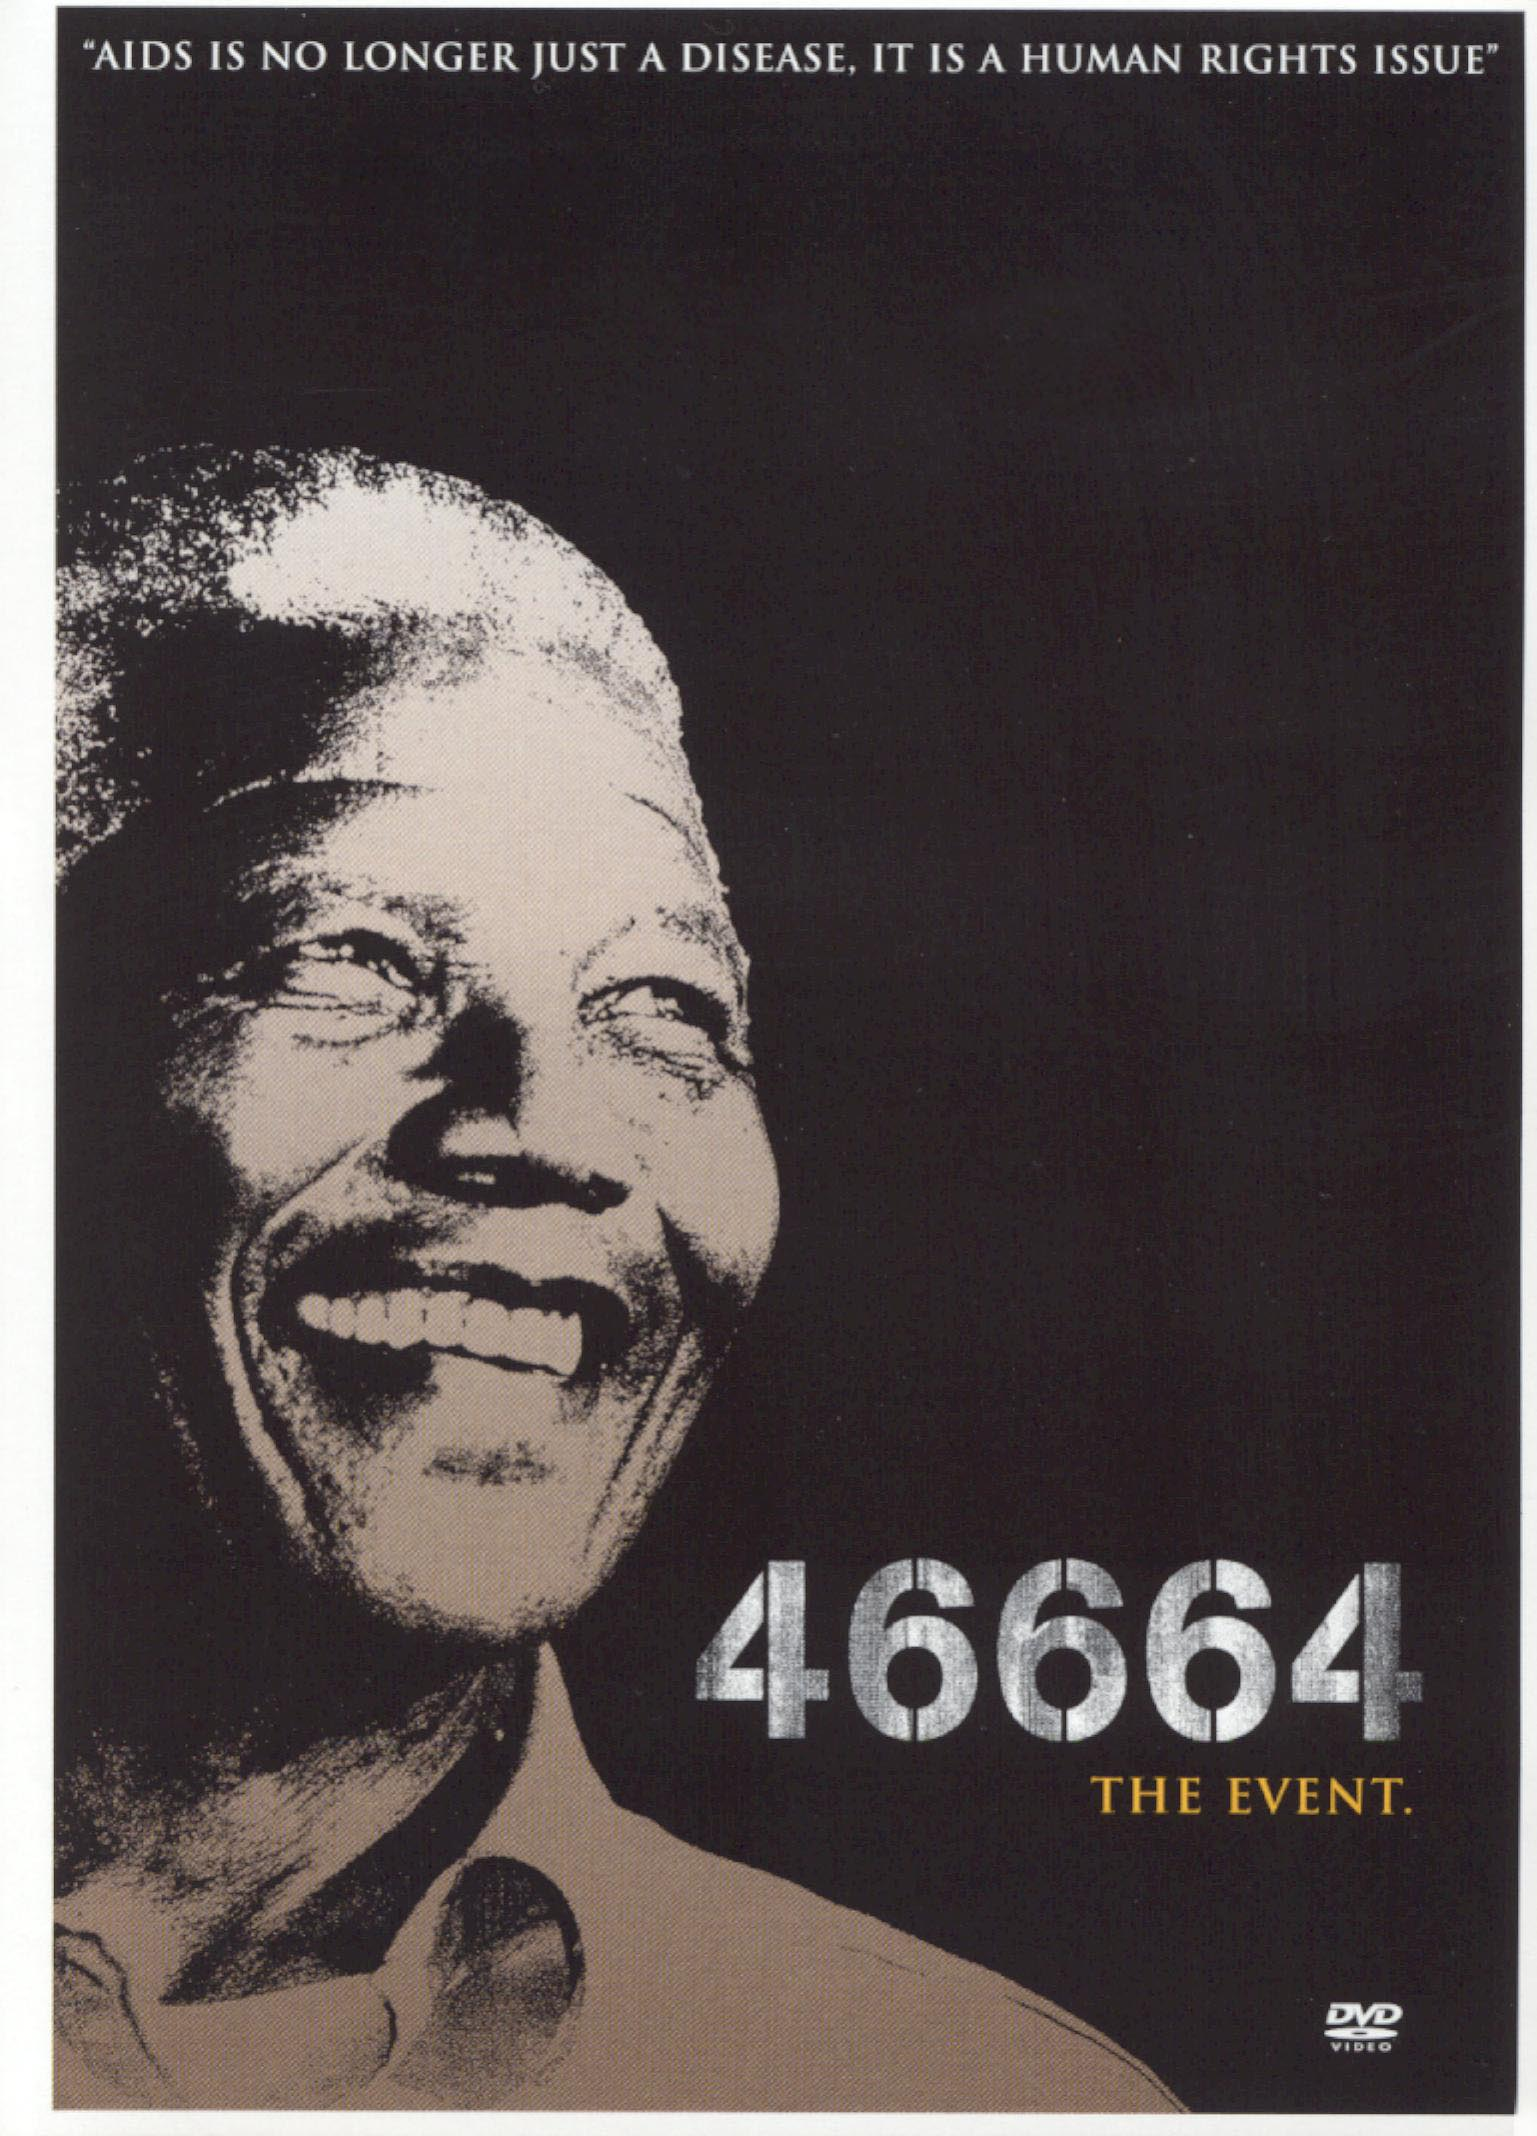 Nelson Mandela's AIDS Day Concert: The Event